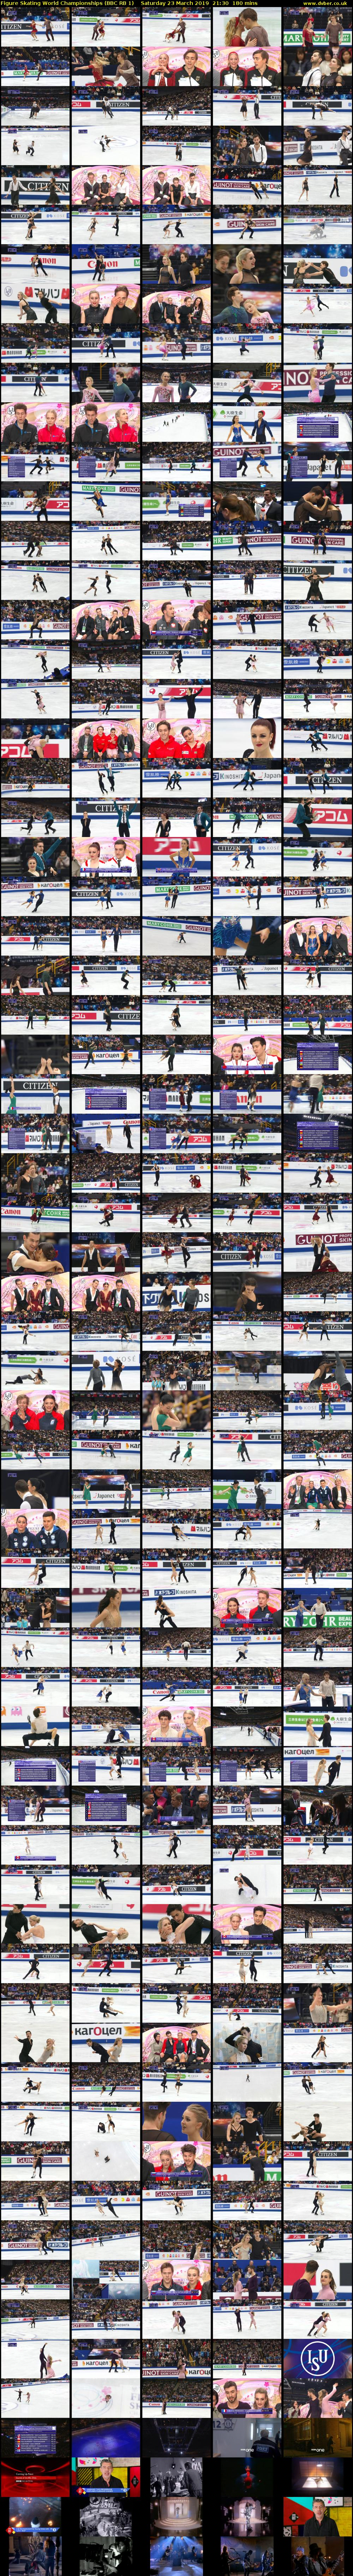 Figure Skating World Championships (BBC RB 1) Saturday 23 March 2019 21:30 - 00:30